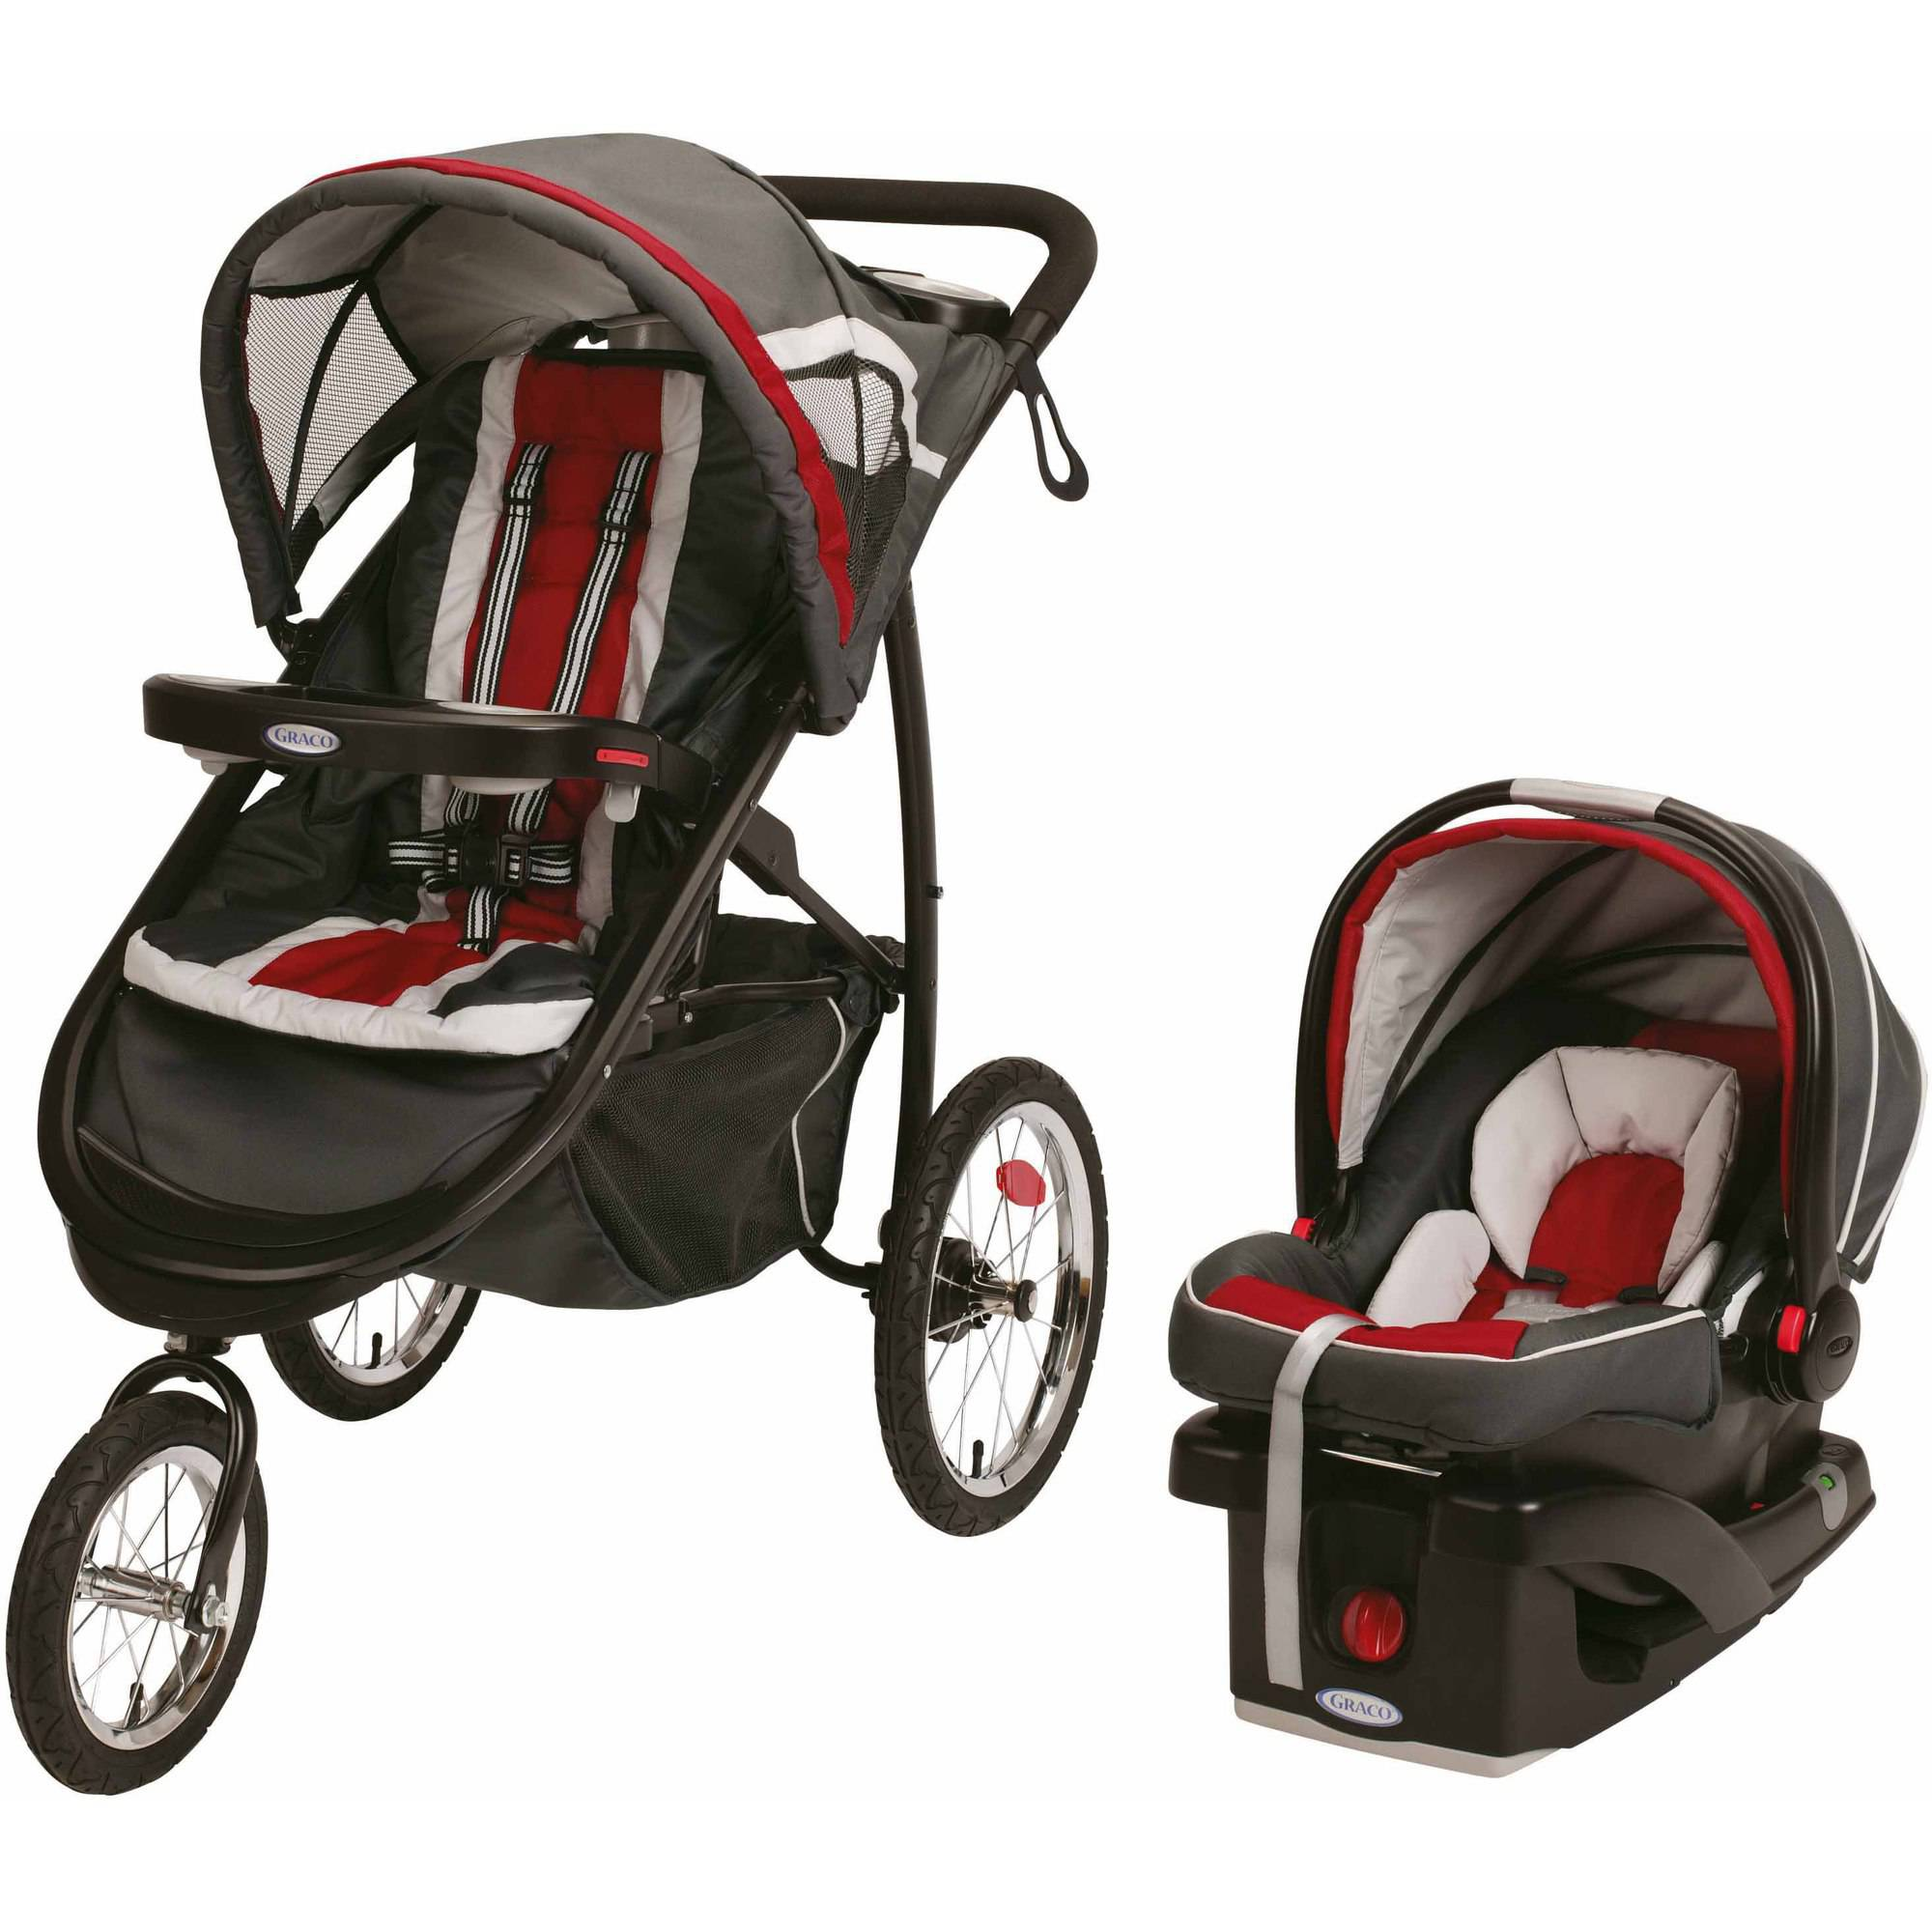 Graco FastAction Fold Jogger Click Connect Jogging Stroller Travel System, Chili Red by Graco